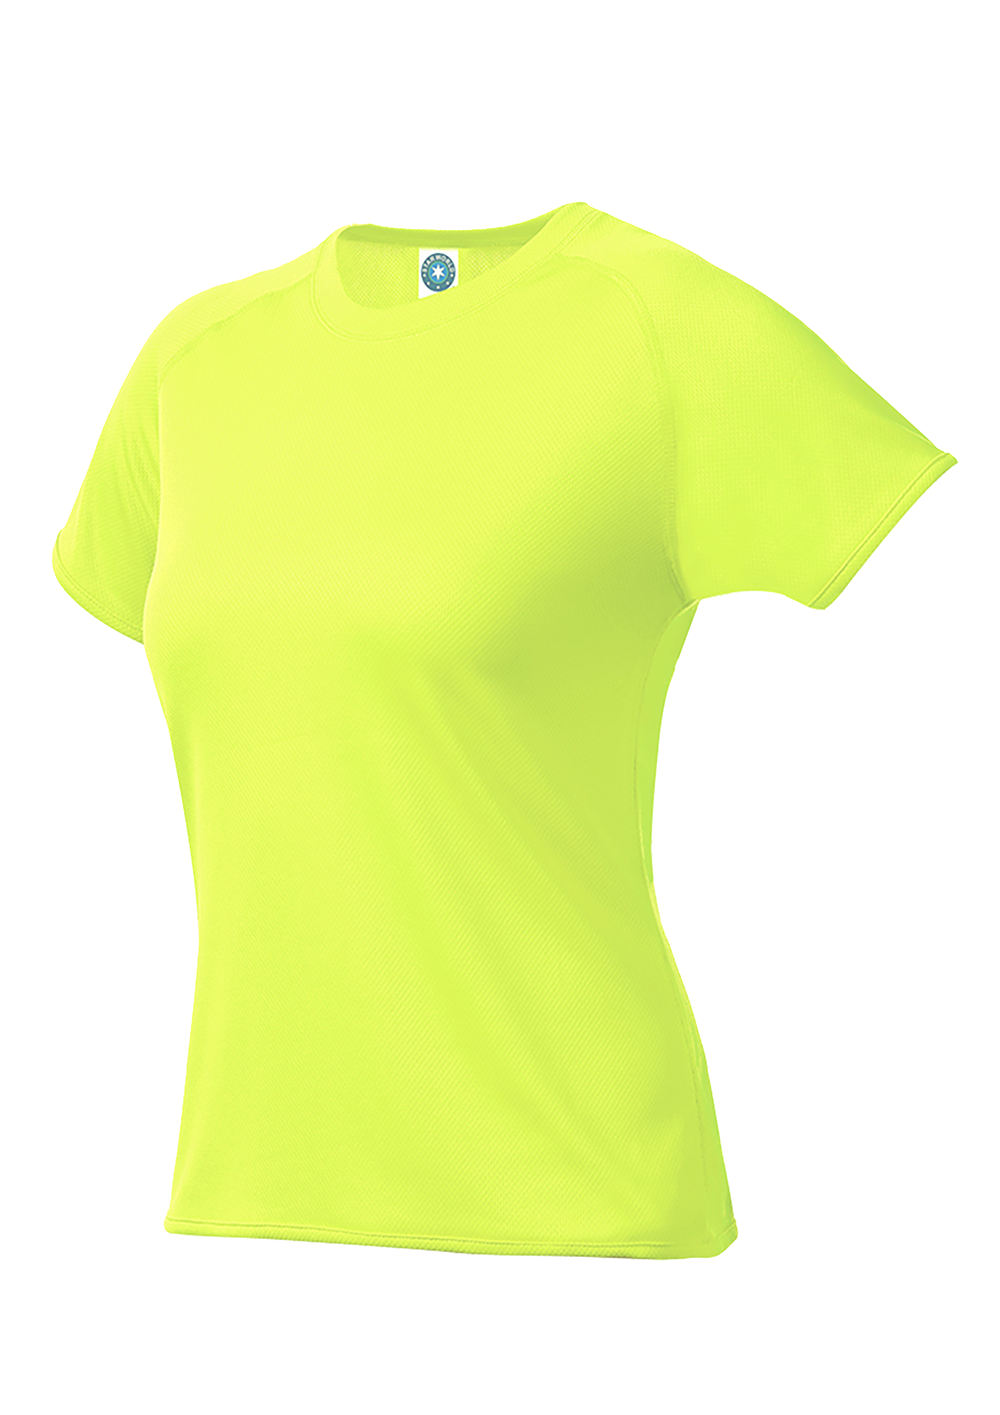 SW403-64-FlYellow.png